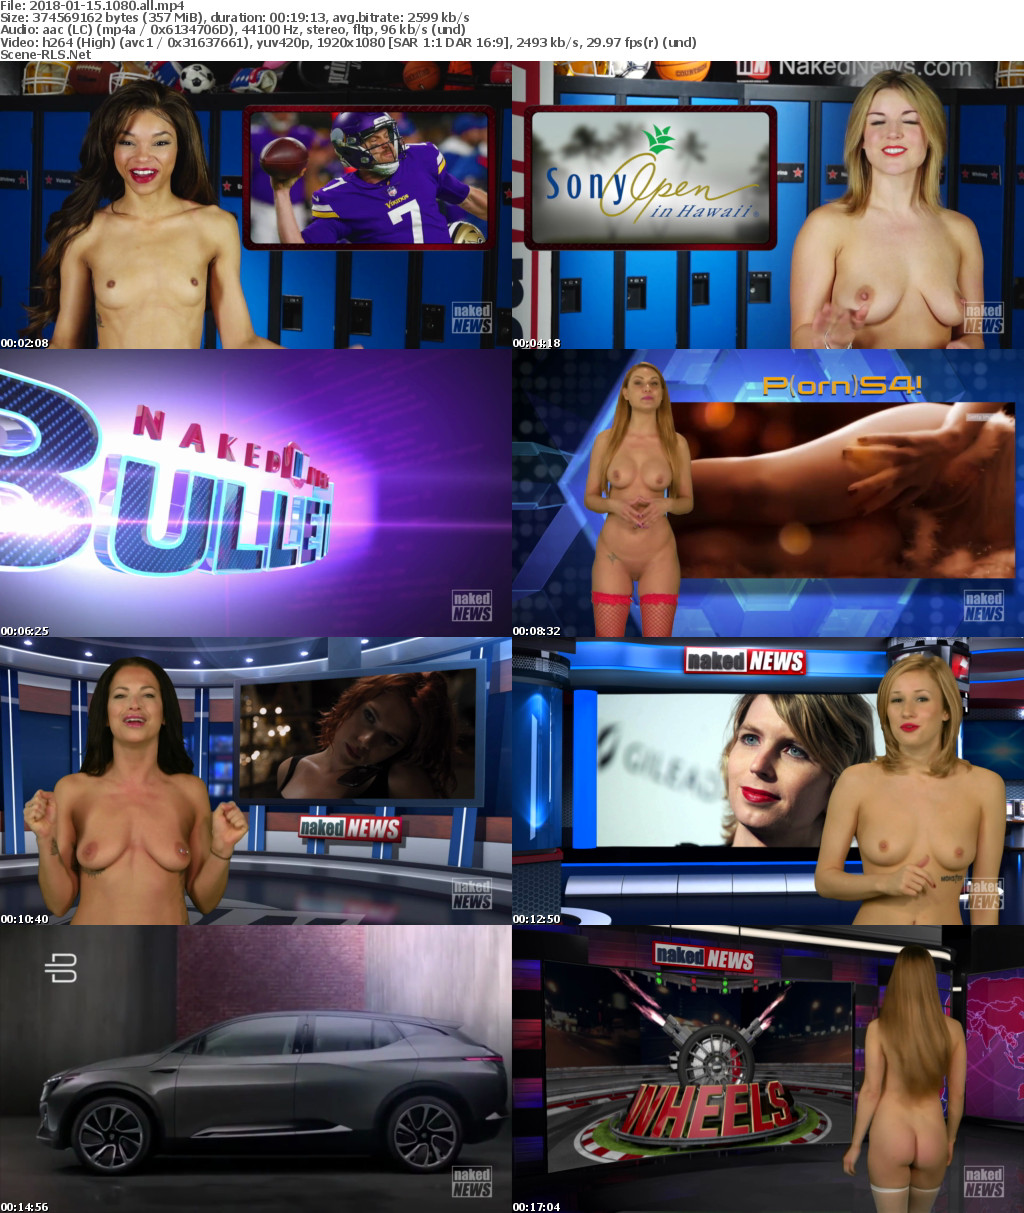 City tv naked news